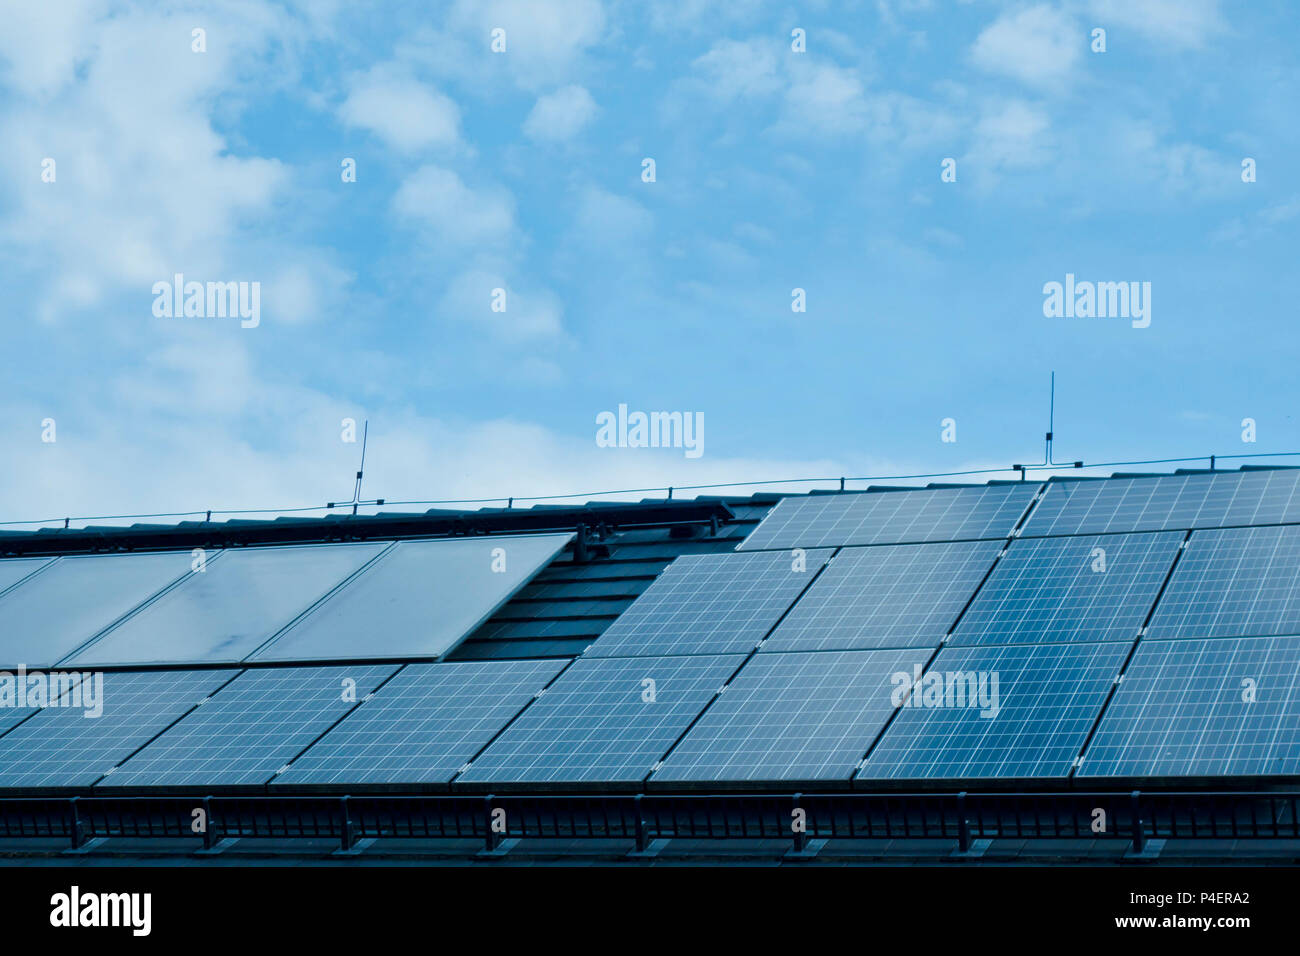 photovoltaic solar panel modules on the roof of a building to generate clean electric energy - Stock Image